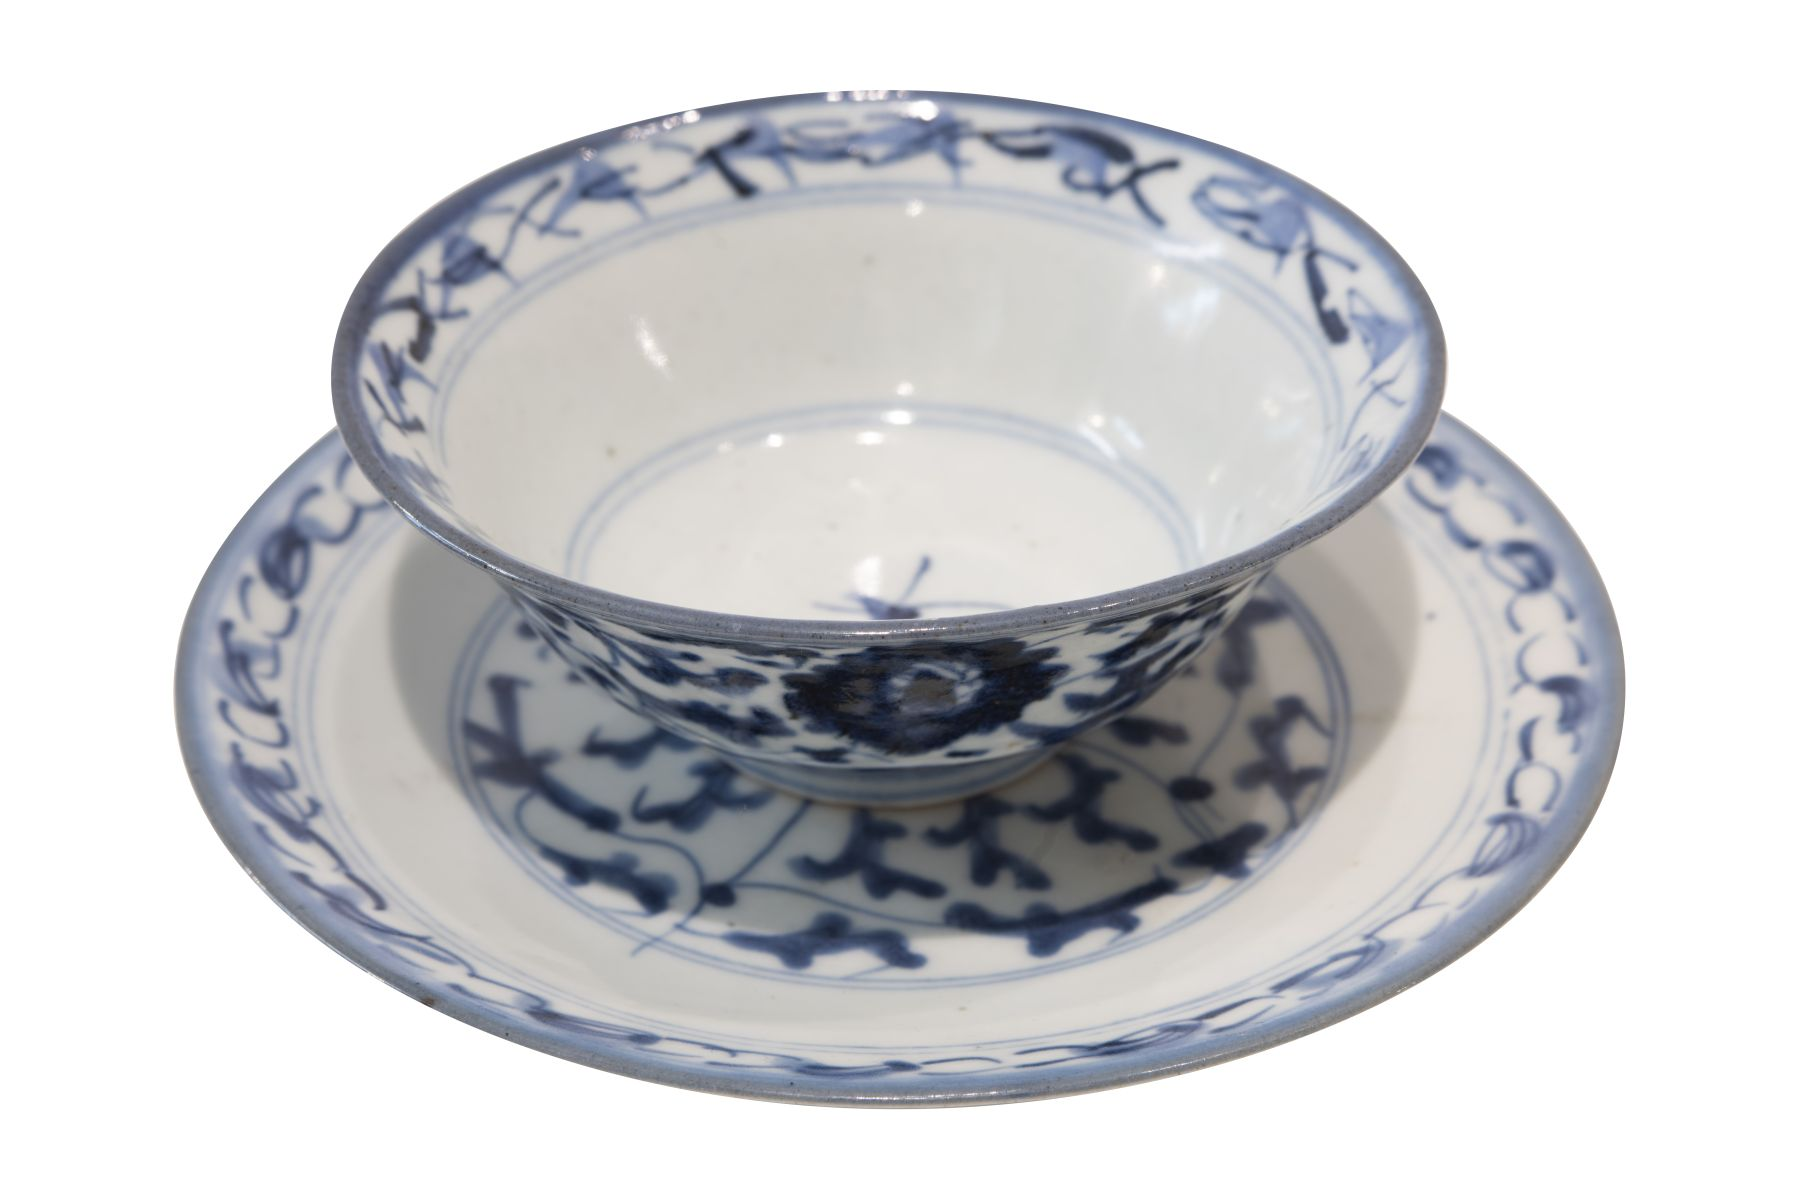 #75 Qing Dynasty bowl and plate | Schale und Teller Qing Dynasty Image